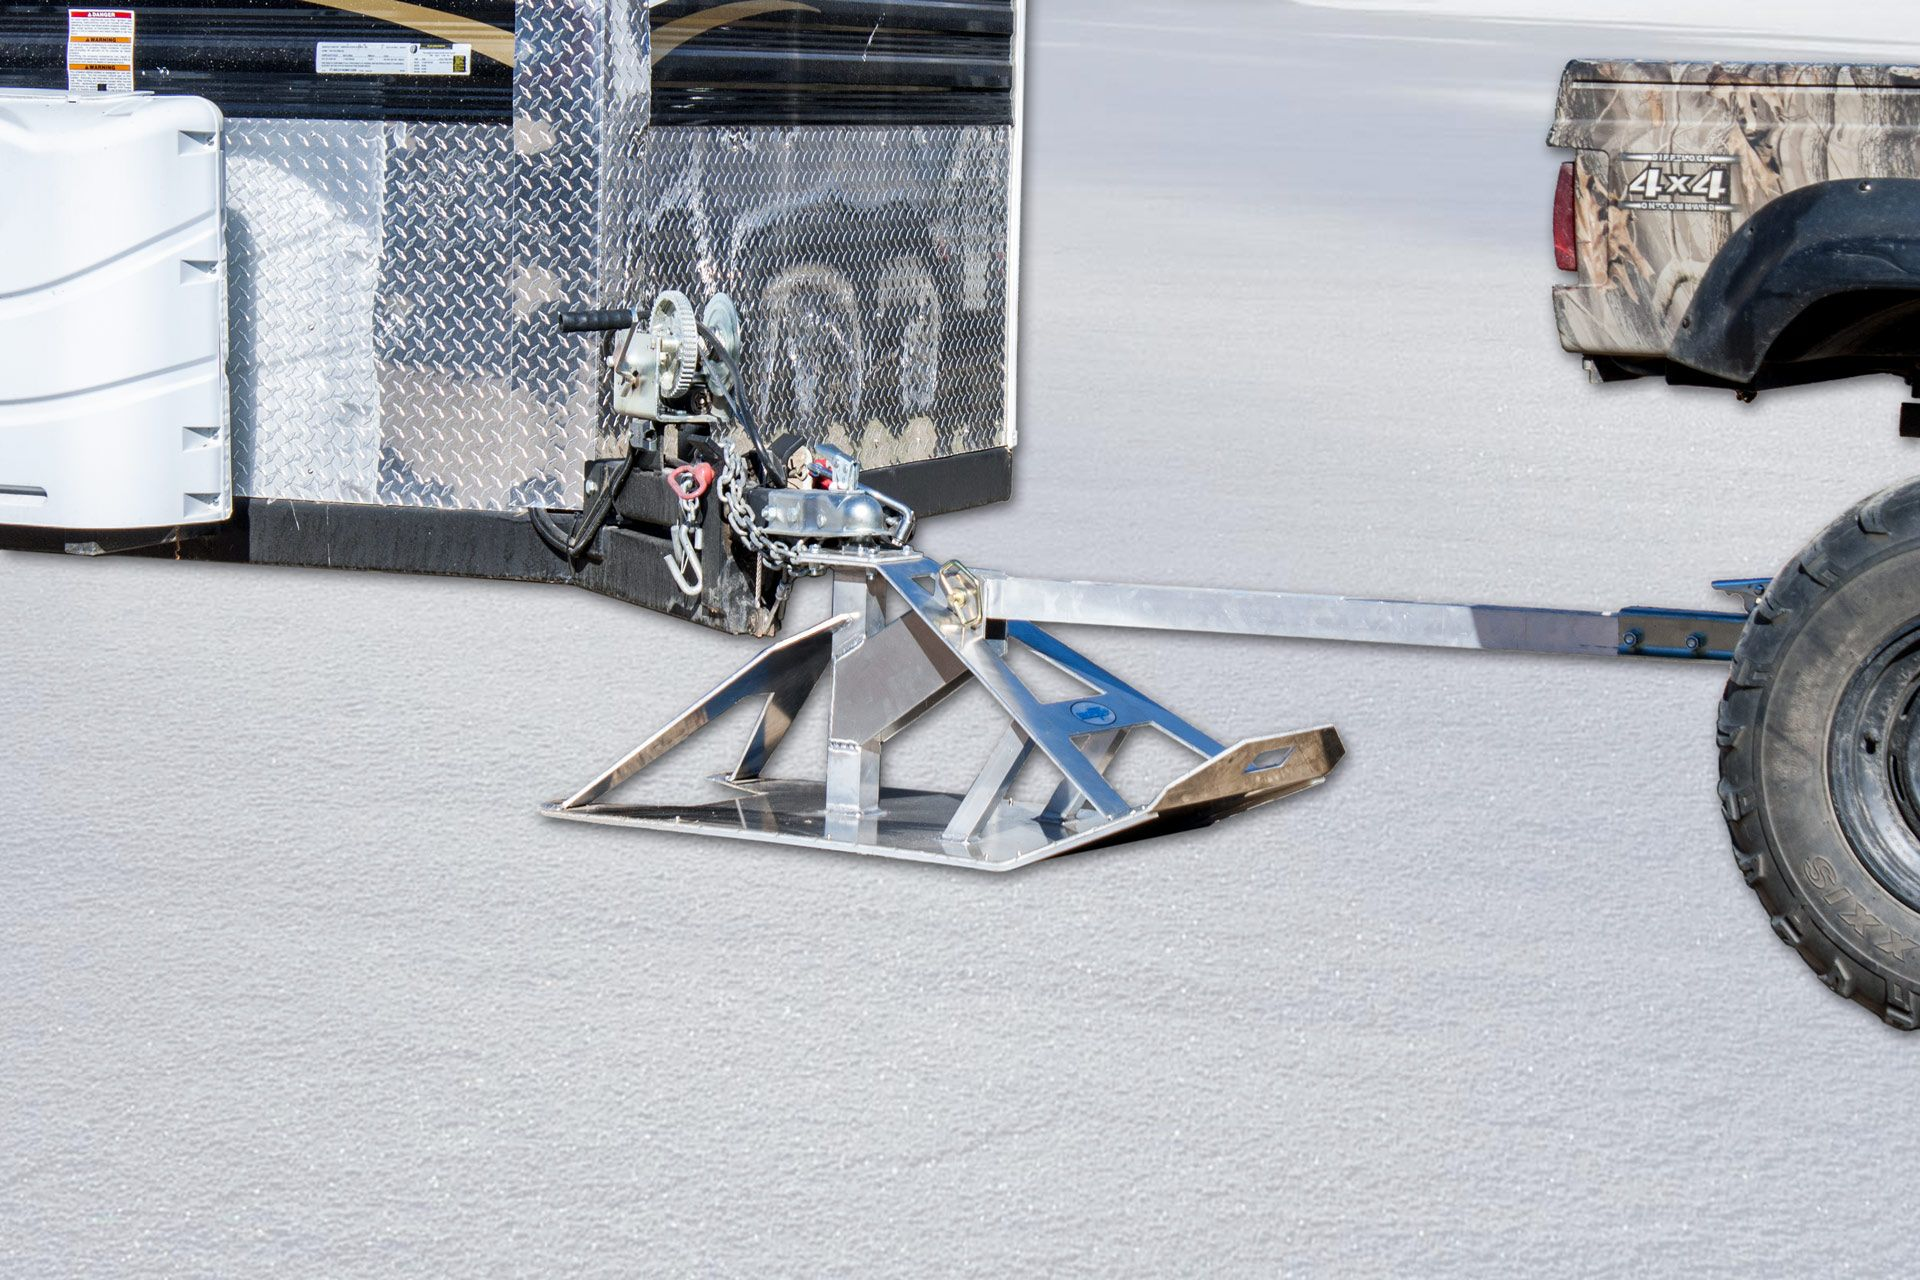 Snow Tow Model 2267 Hooked Up To An Ice Castle Fish House And Side By Side Atv Heavy Duty Aluminum Construc Ice Castle Fish House Fish House Ice Fishing Shack